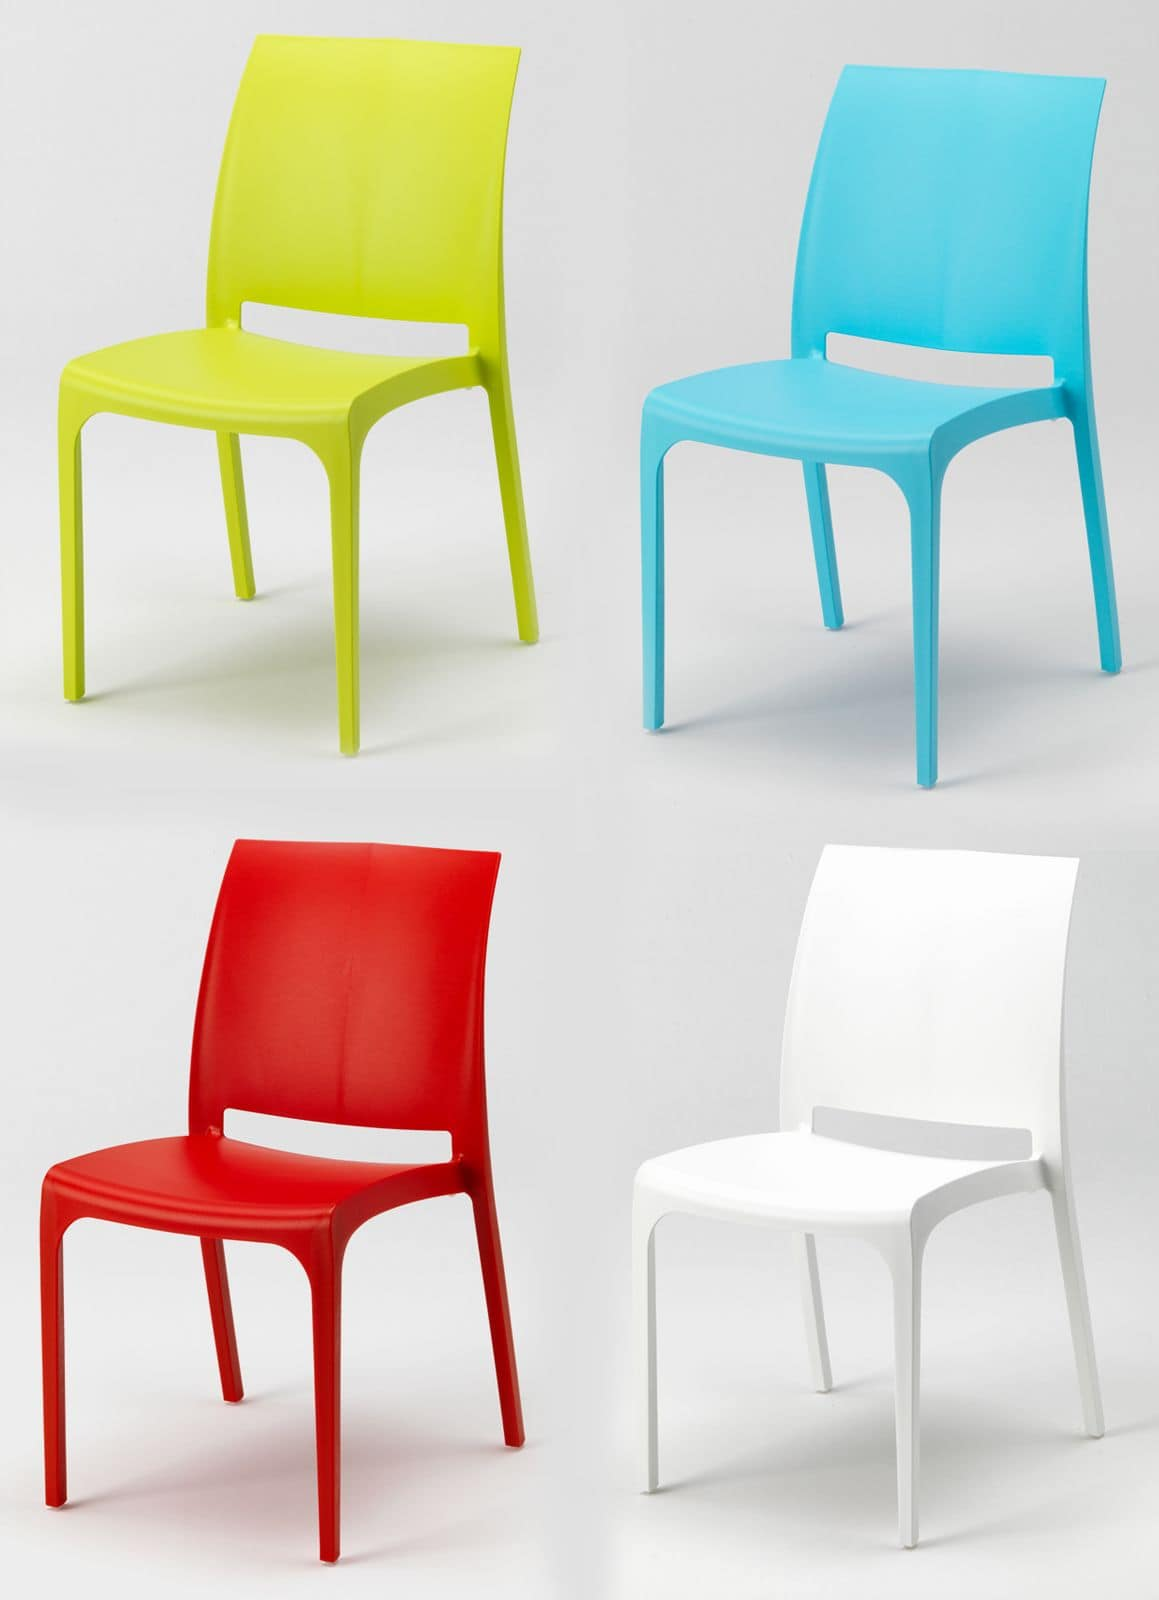 Sedia impilabile in plastica per esterni idfdesign for Sedie design colorate